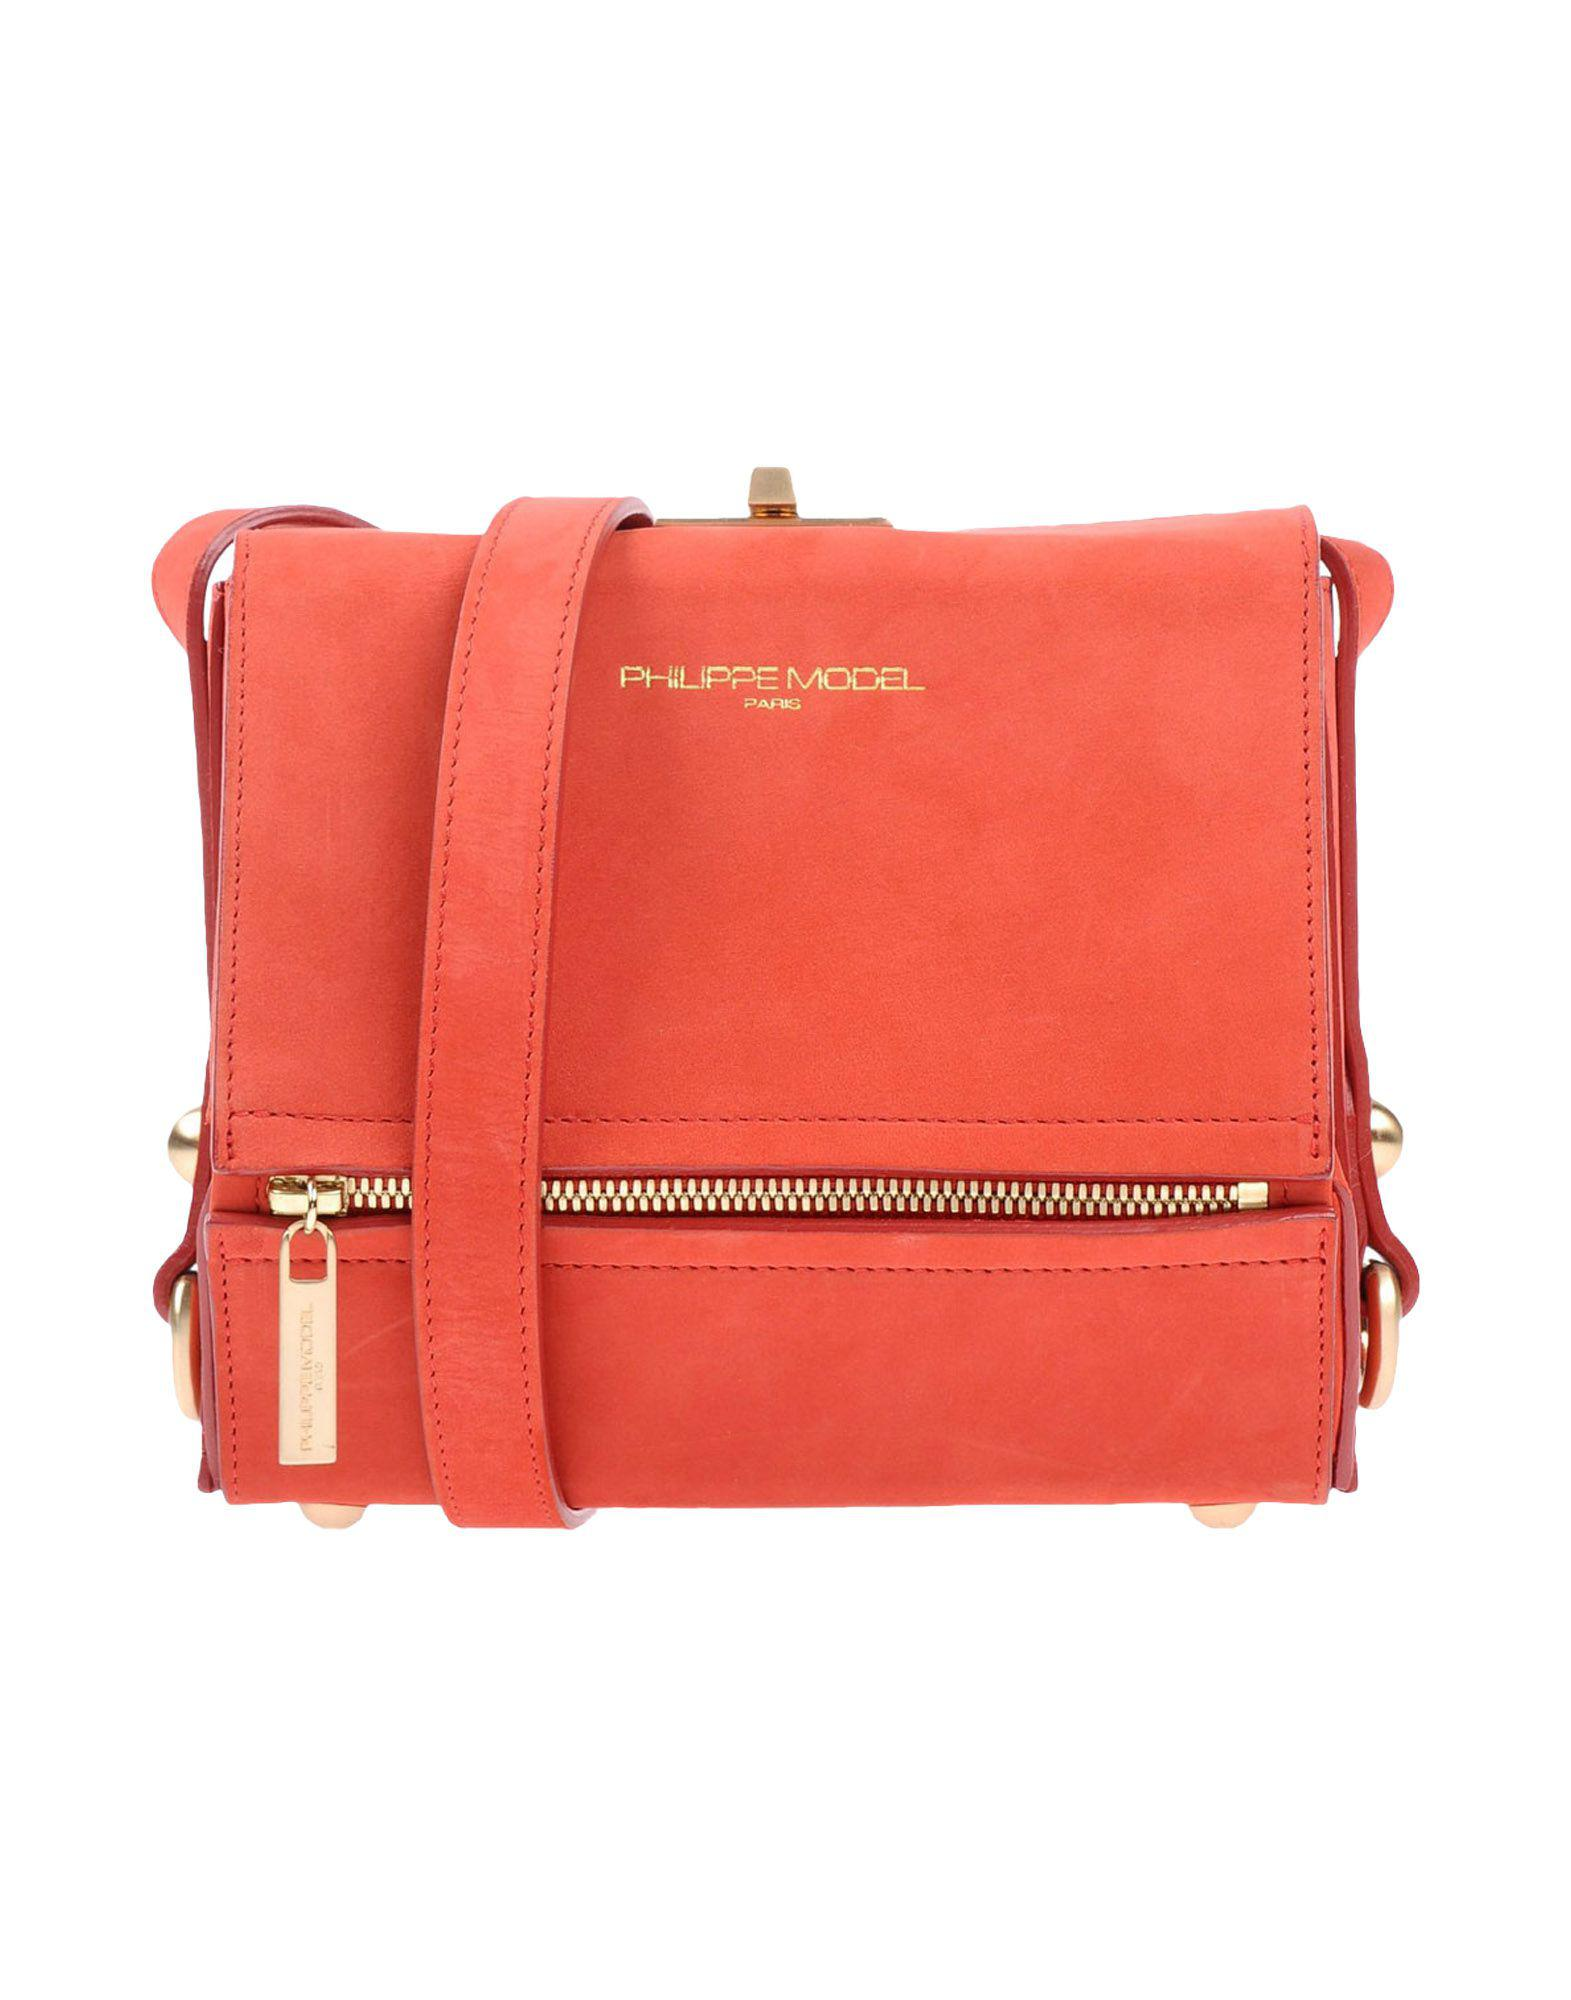 Body Philippe In Model Cross Red Lyst Bag zxpWwTqzat